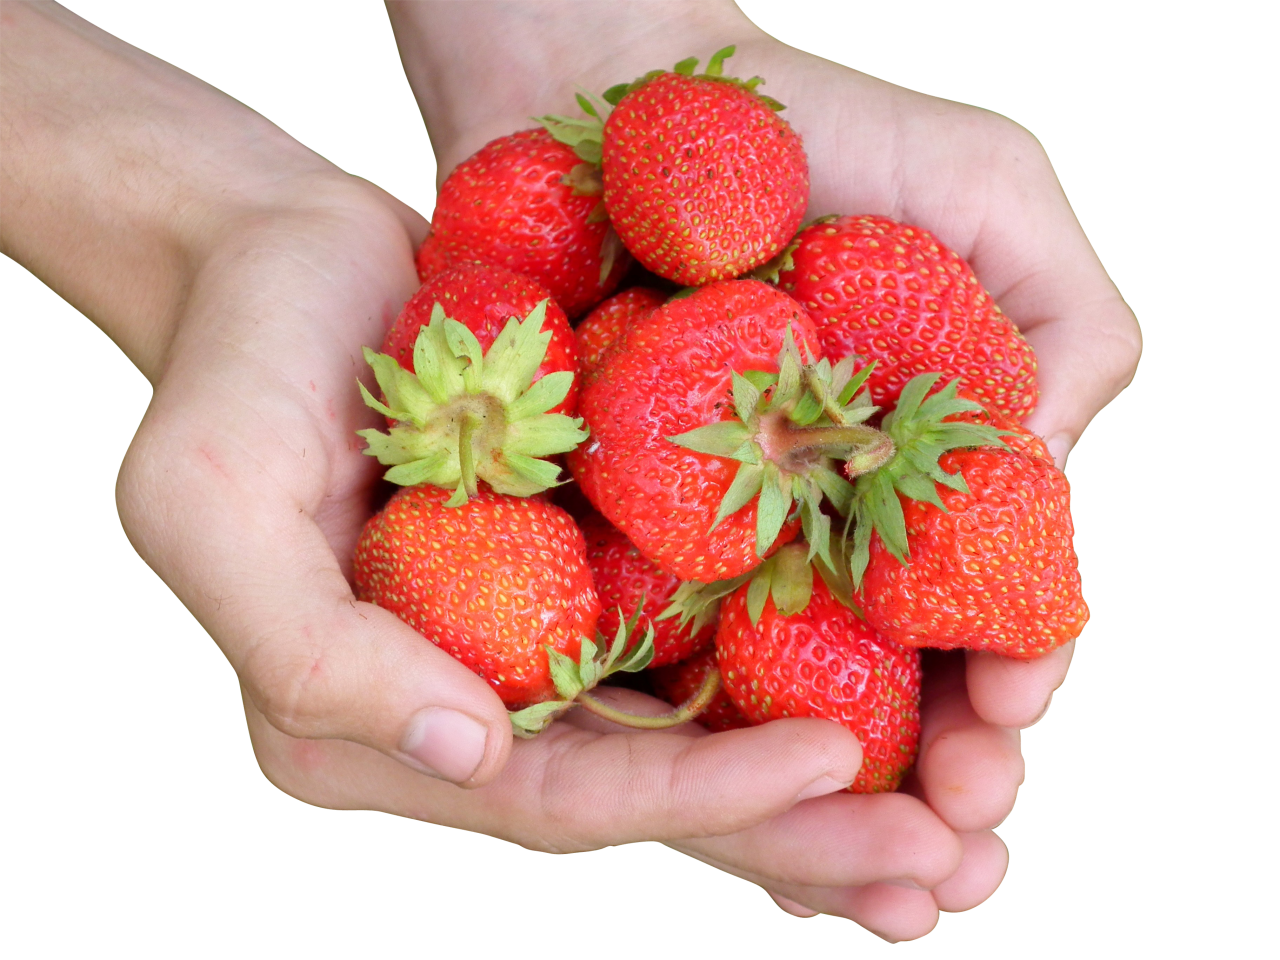 Hands holding a bunch of strawberries PNG Image